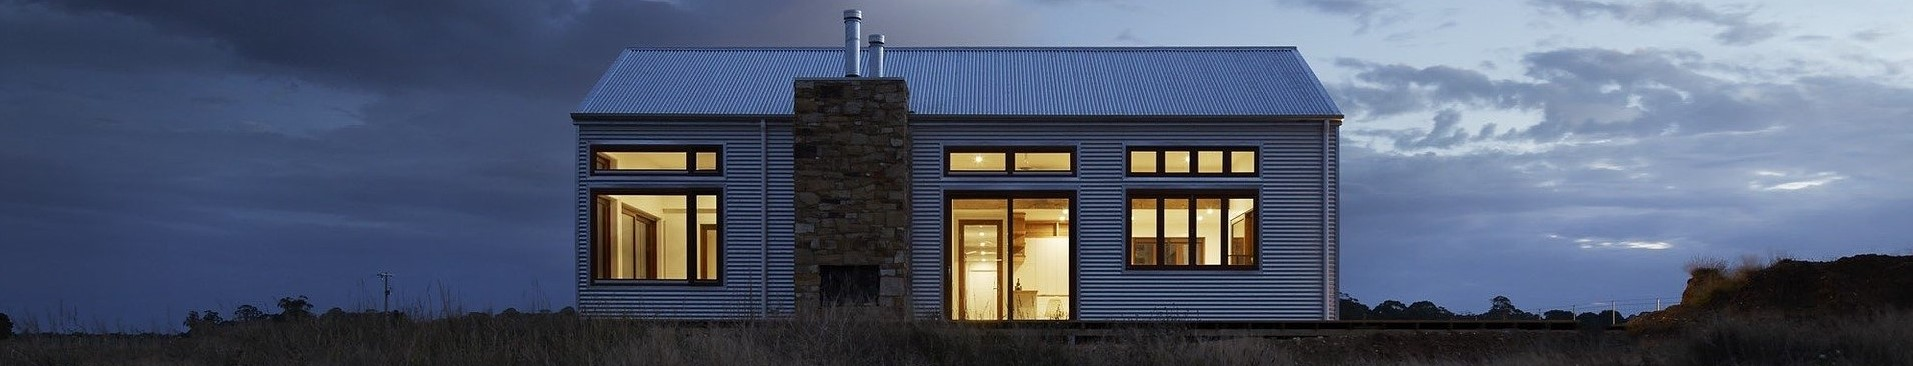 axsol-application-residential-cabin